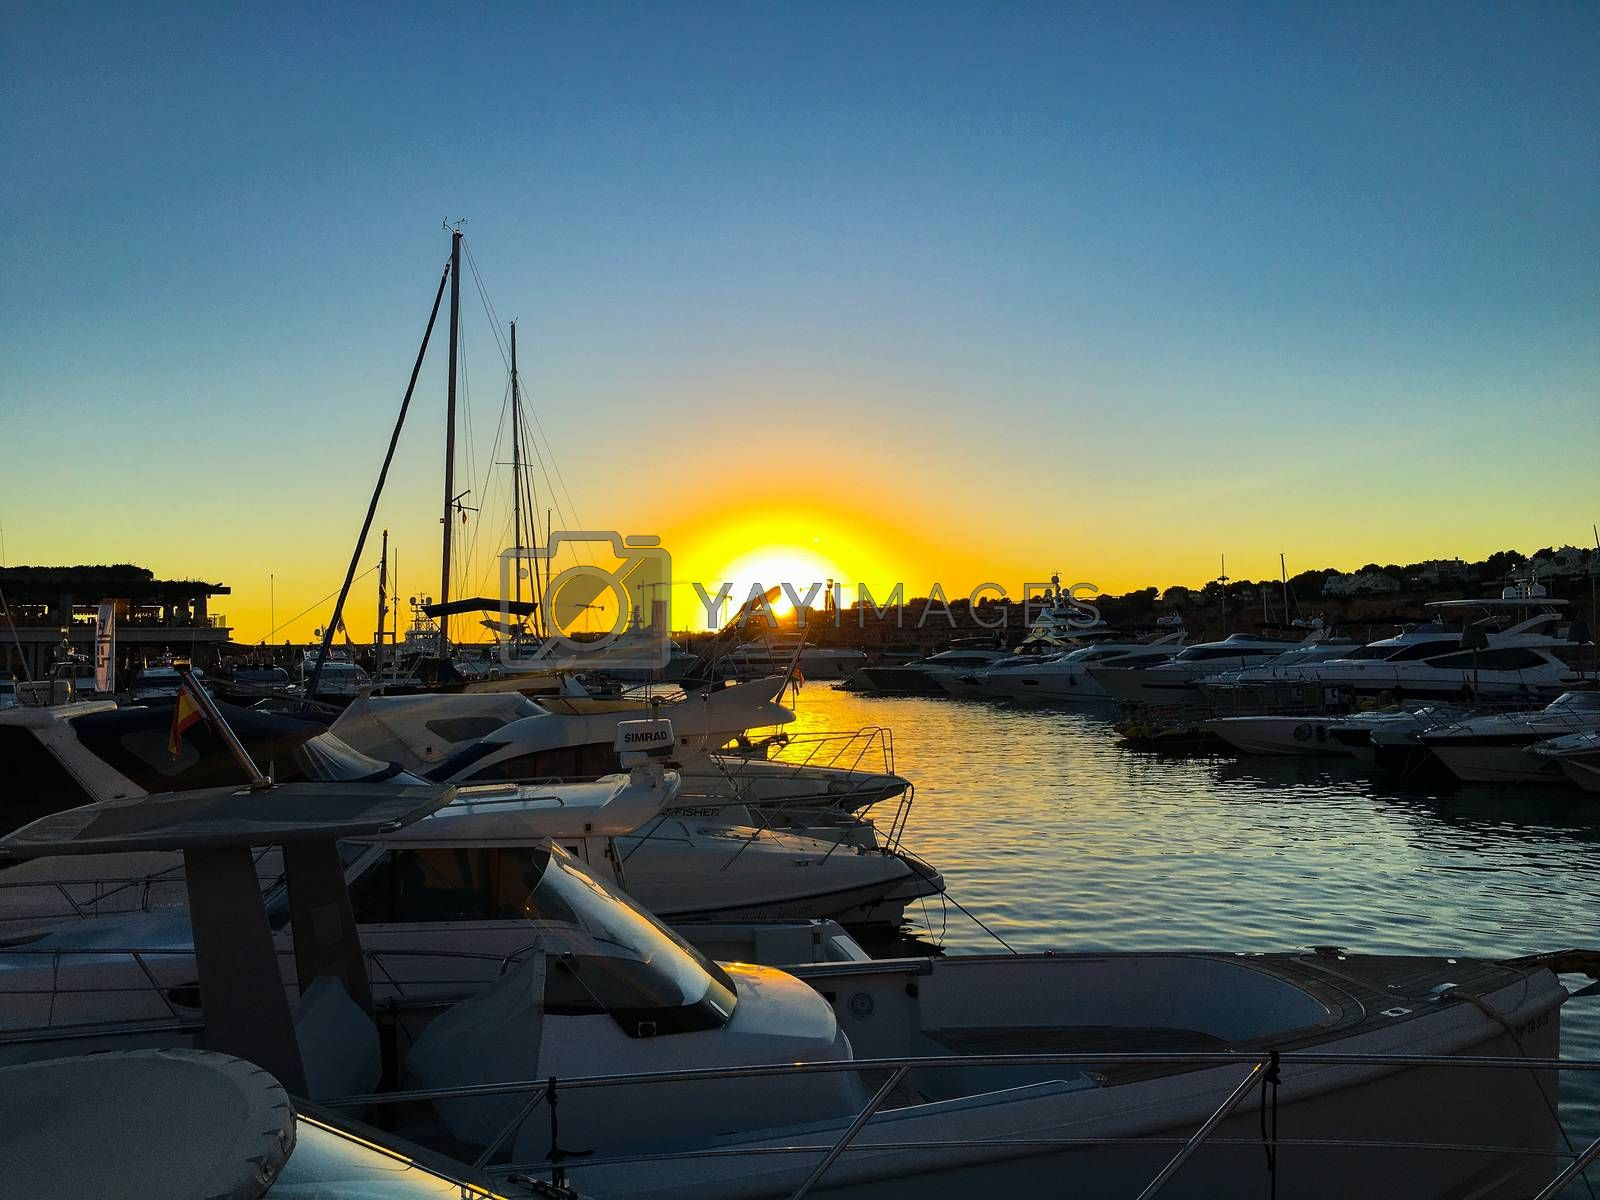 wonderful sunset at the pier with sailboats in front